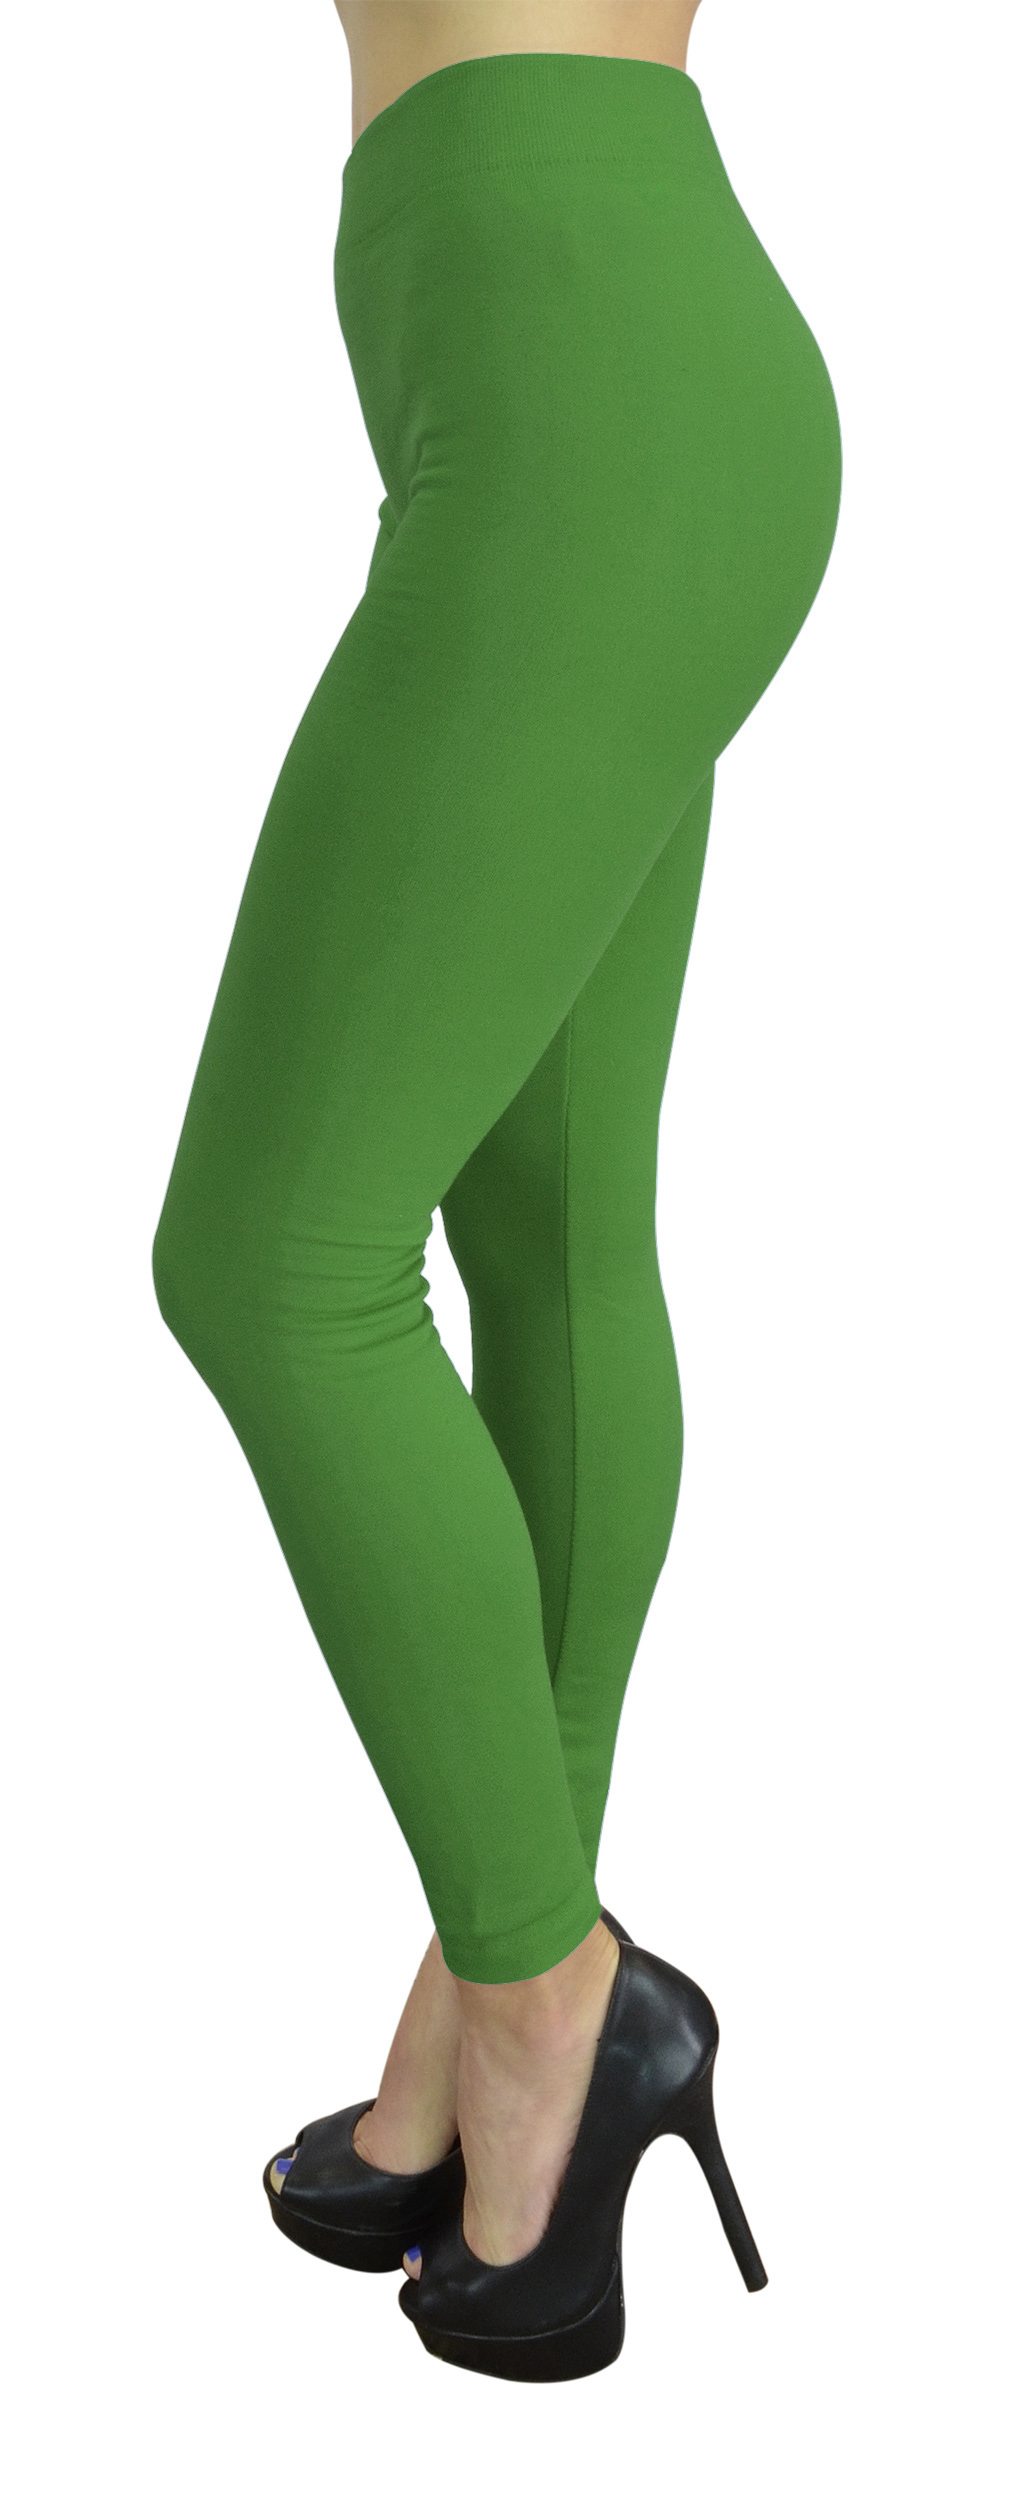 Belle Donne Womens Leggings Workout Yoga Solid Color High Waist by Jade